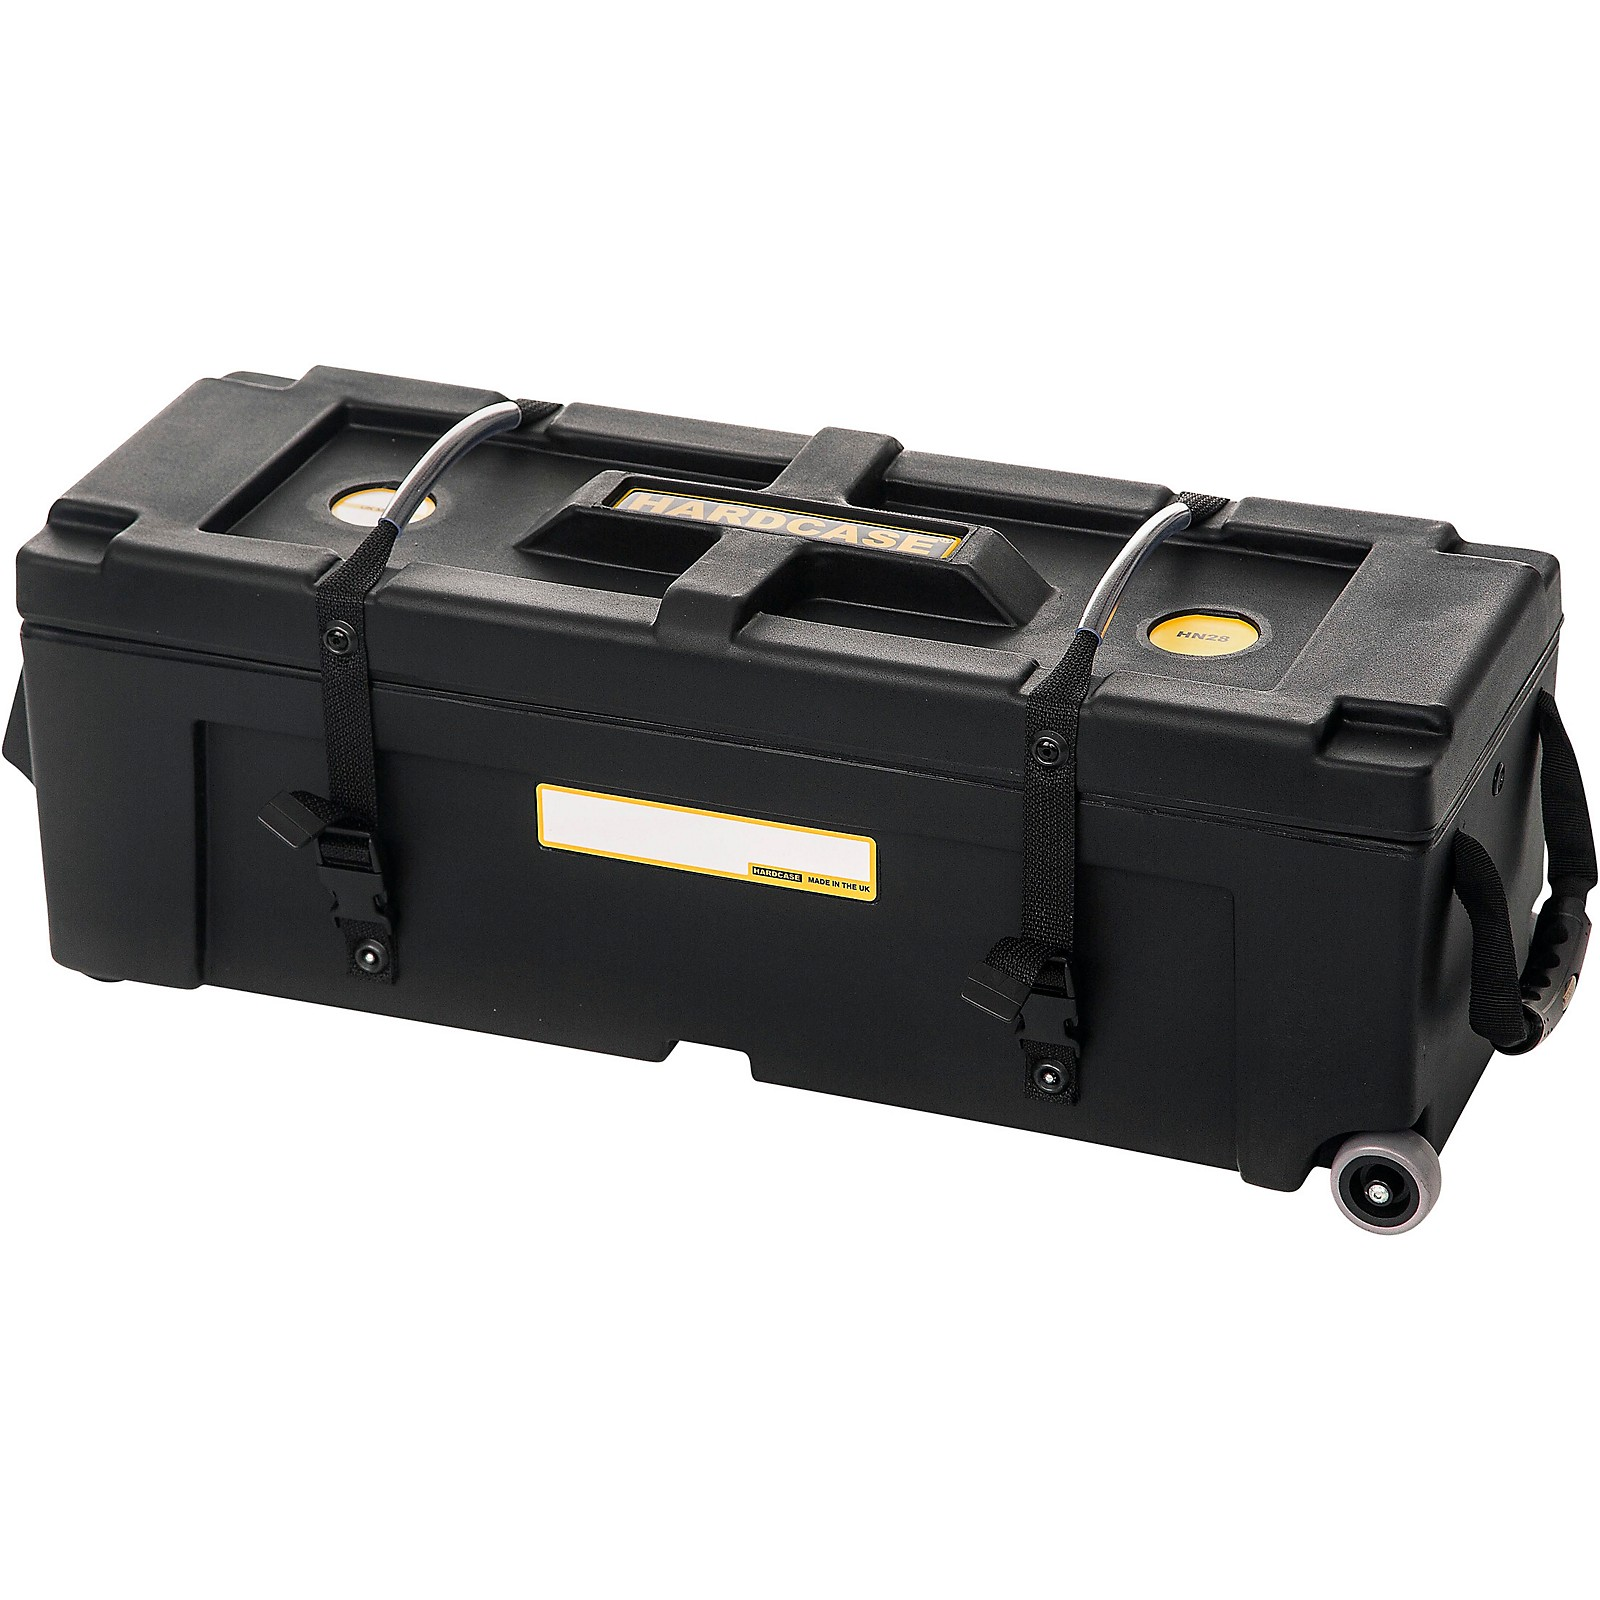 HARDCASE 28 x 10 x 10 in. Hardware Case with Two Wheels